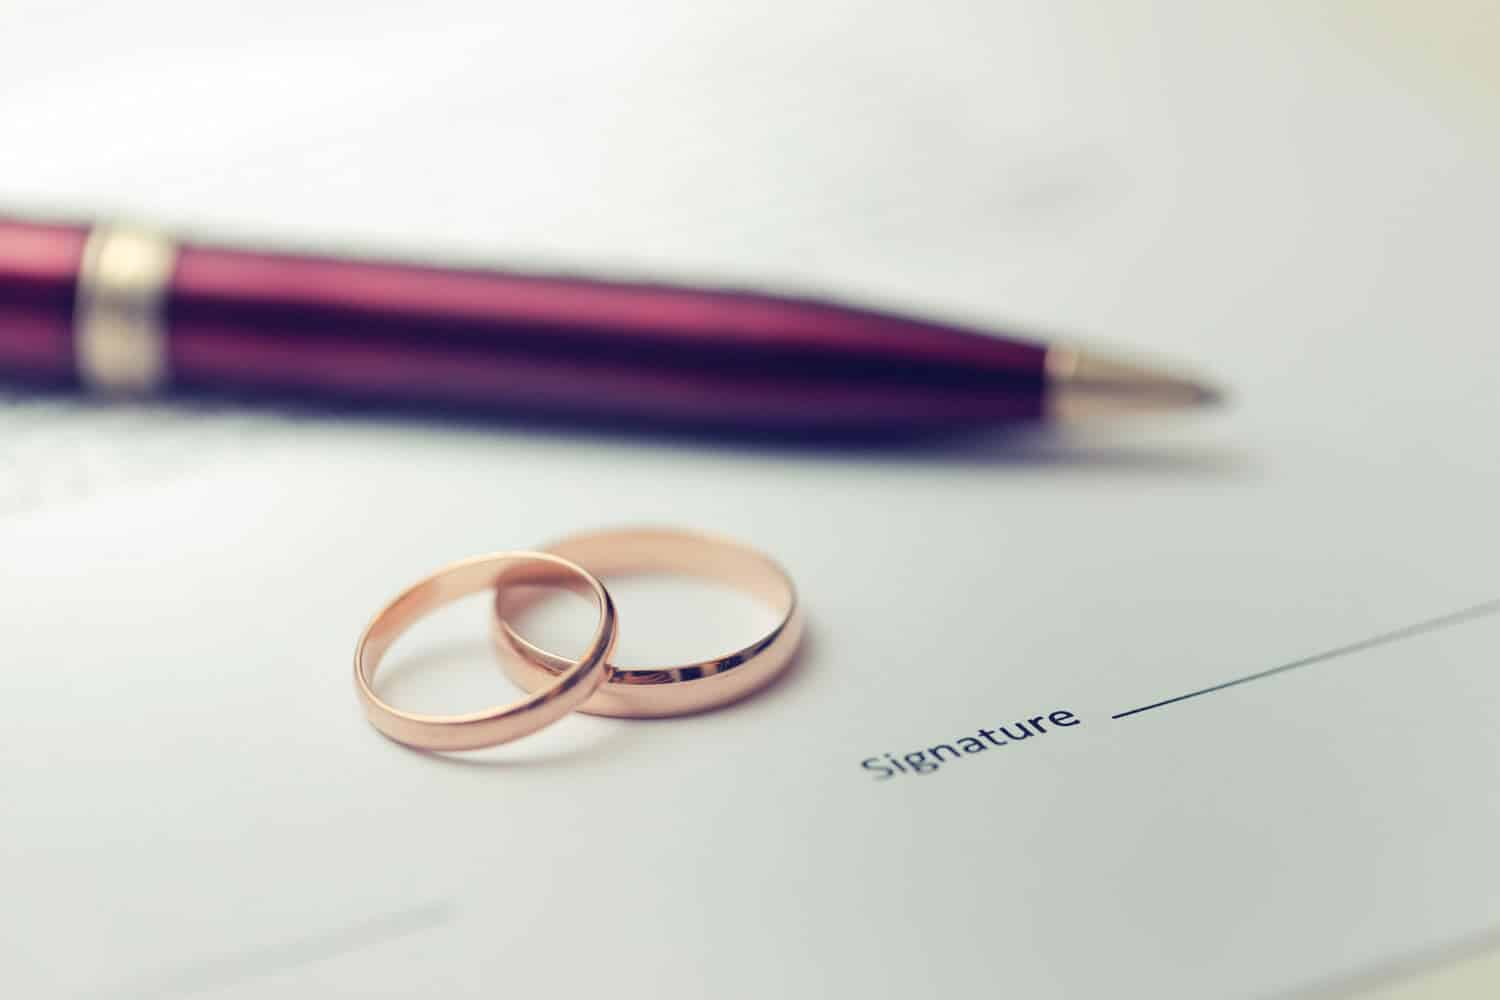 unsigned marriage license and divorce